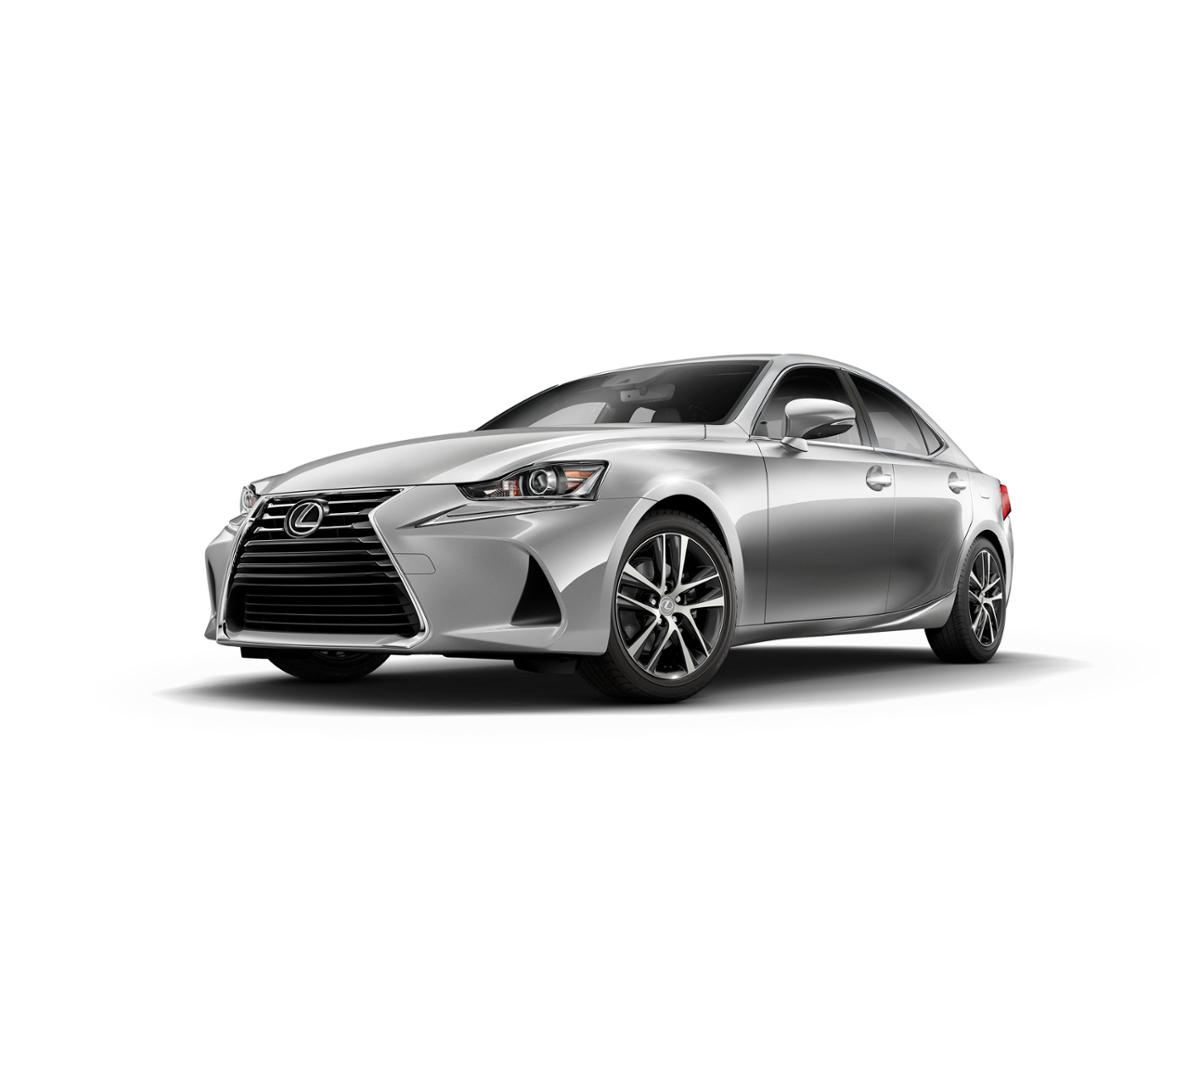 2018 Lexus IS 300 Vehicle Photo in Fort Worth, TX 76132